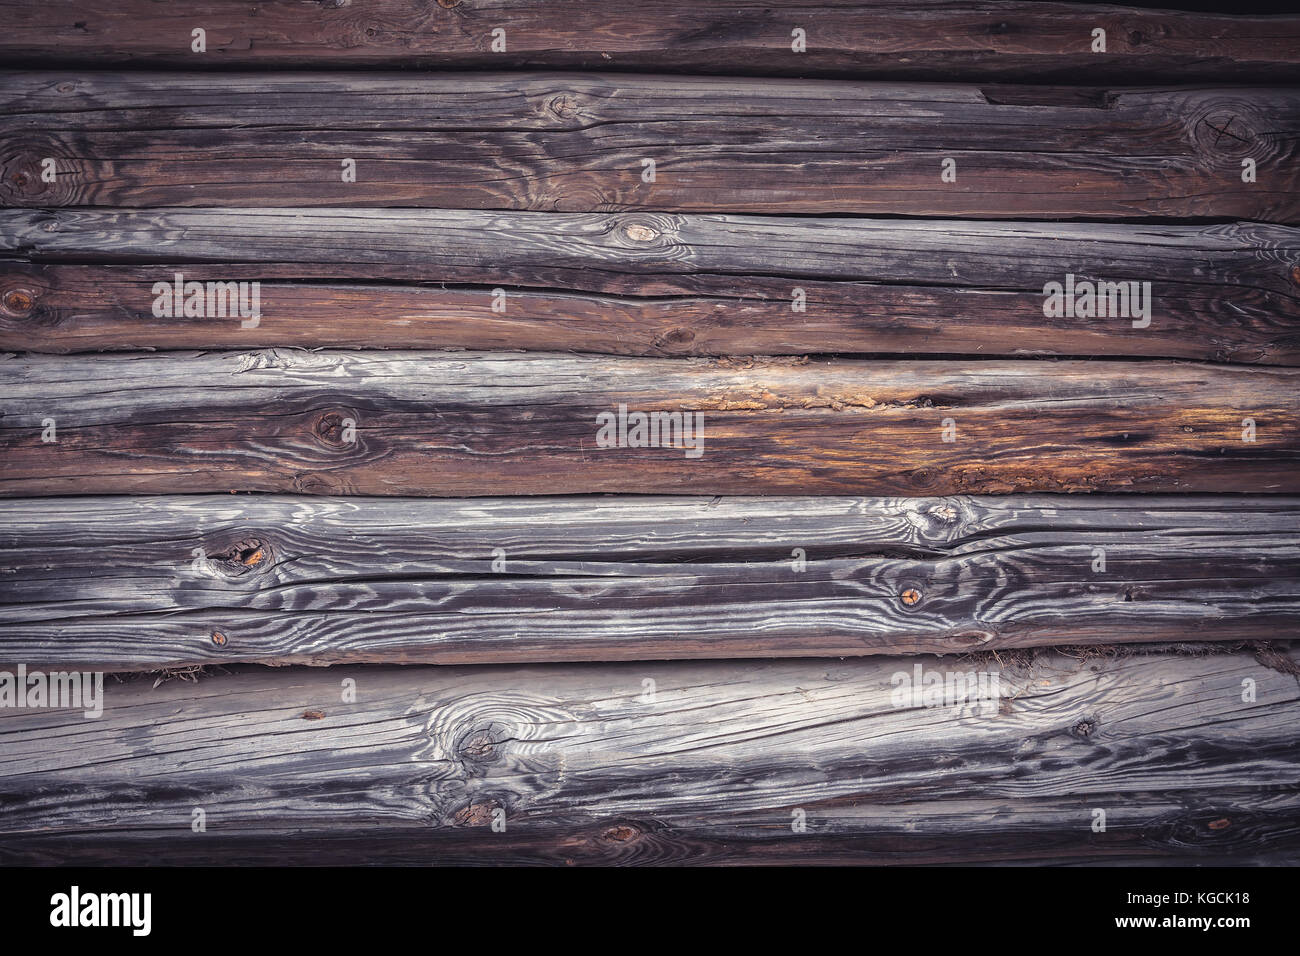 Vintage Log Cabin Rustic Wood Wall Background Stock Photo 165006164